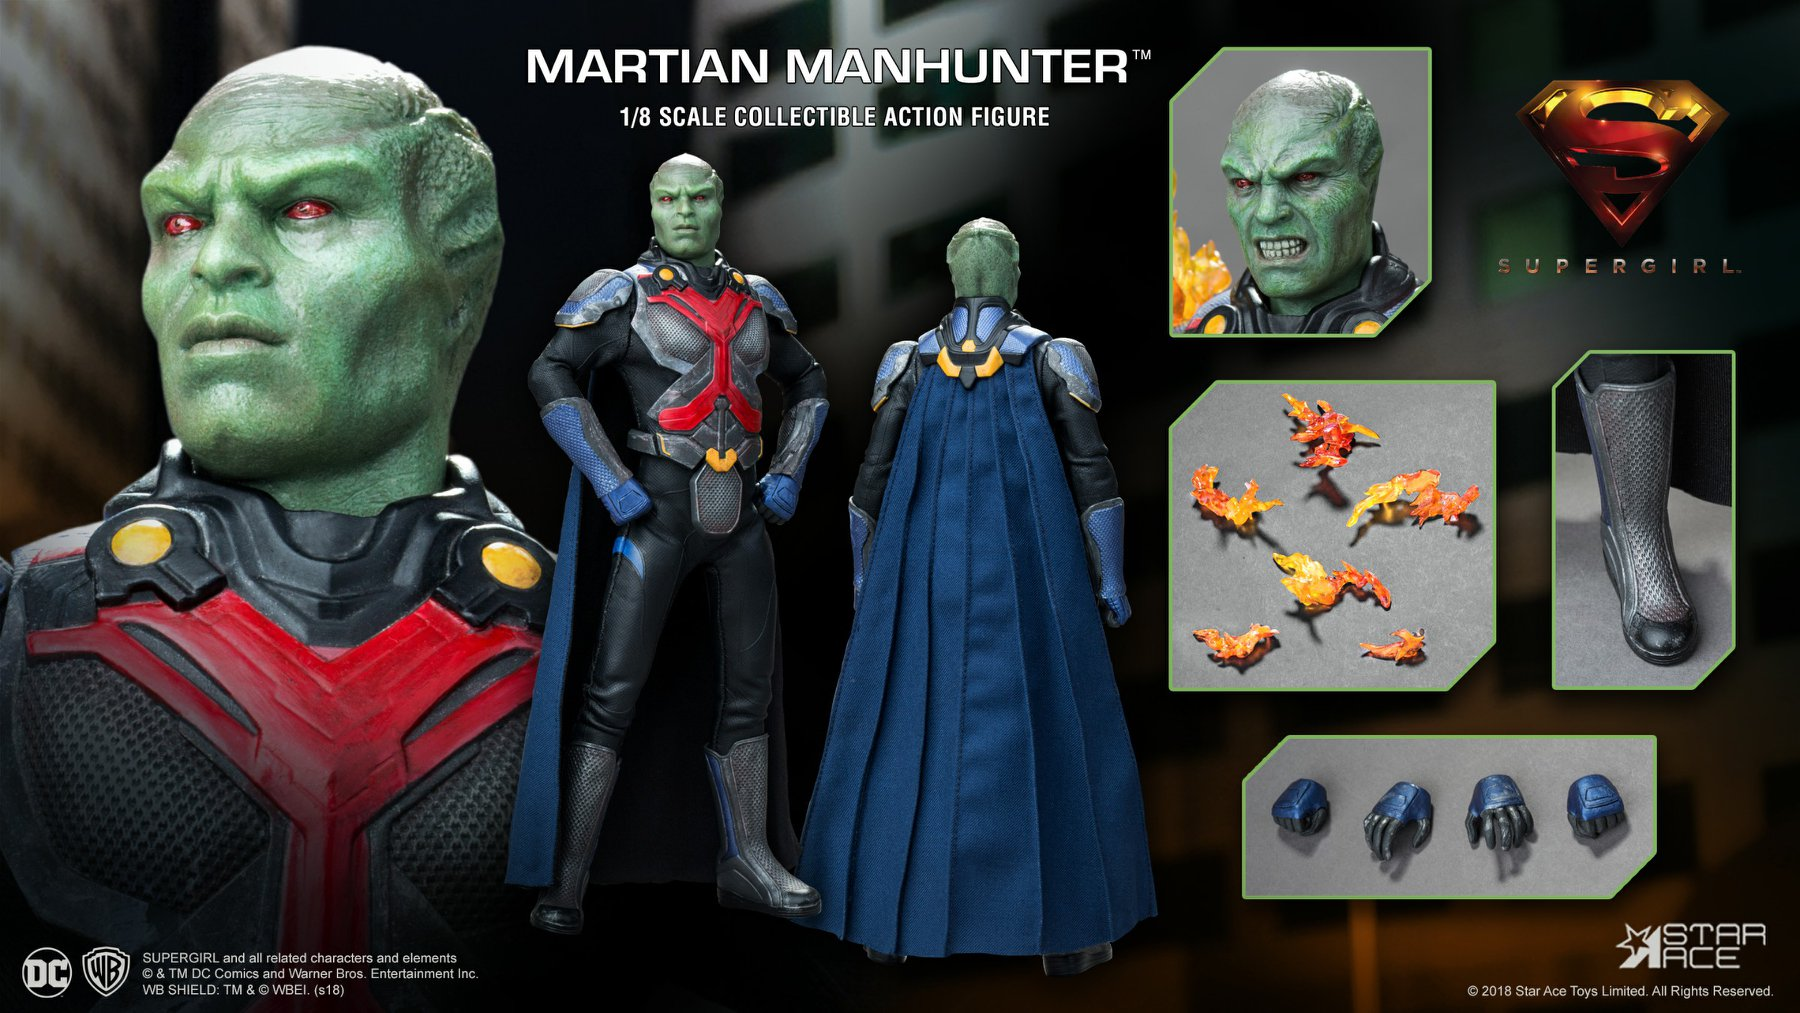 http://news.toyark.com/wp-content/uploads/sites/4/2018/07/Star-Ace-CW-Martian-Manhunter-010.jpg